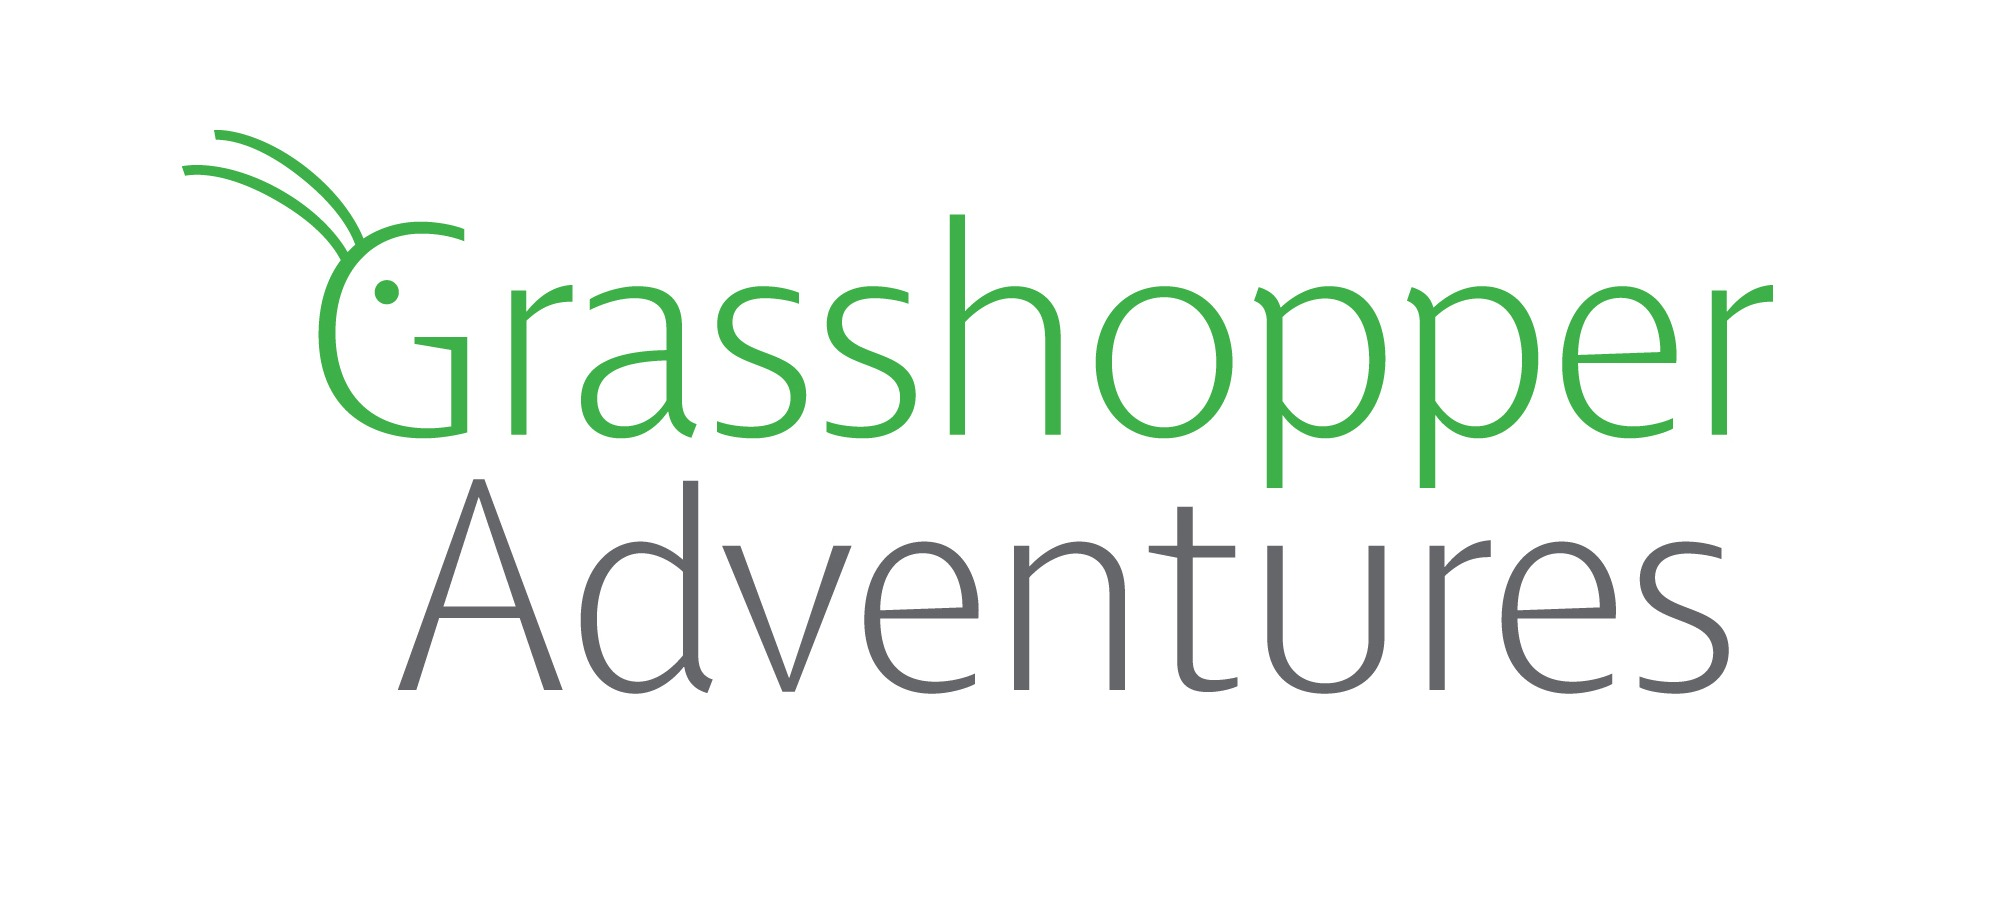 Read Grasshopper Adventures Reviews